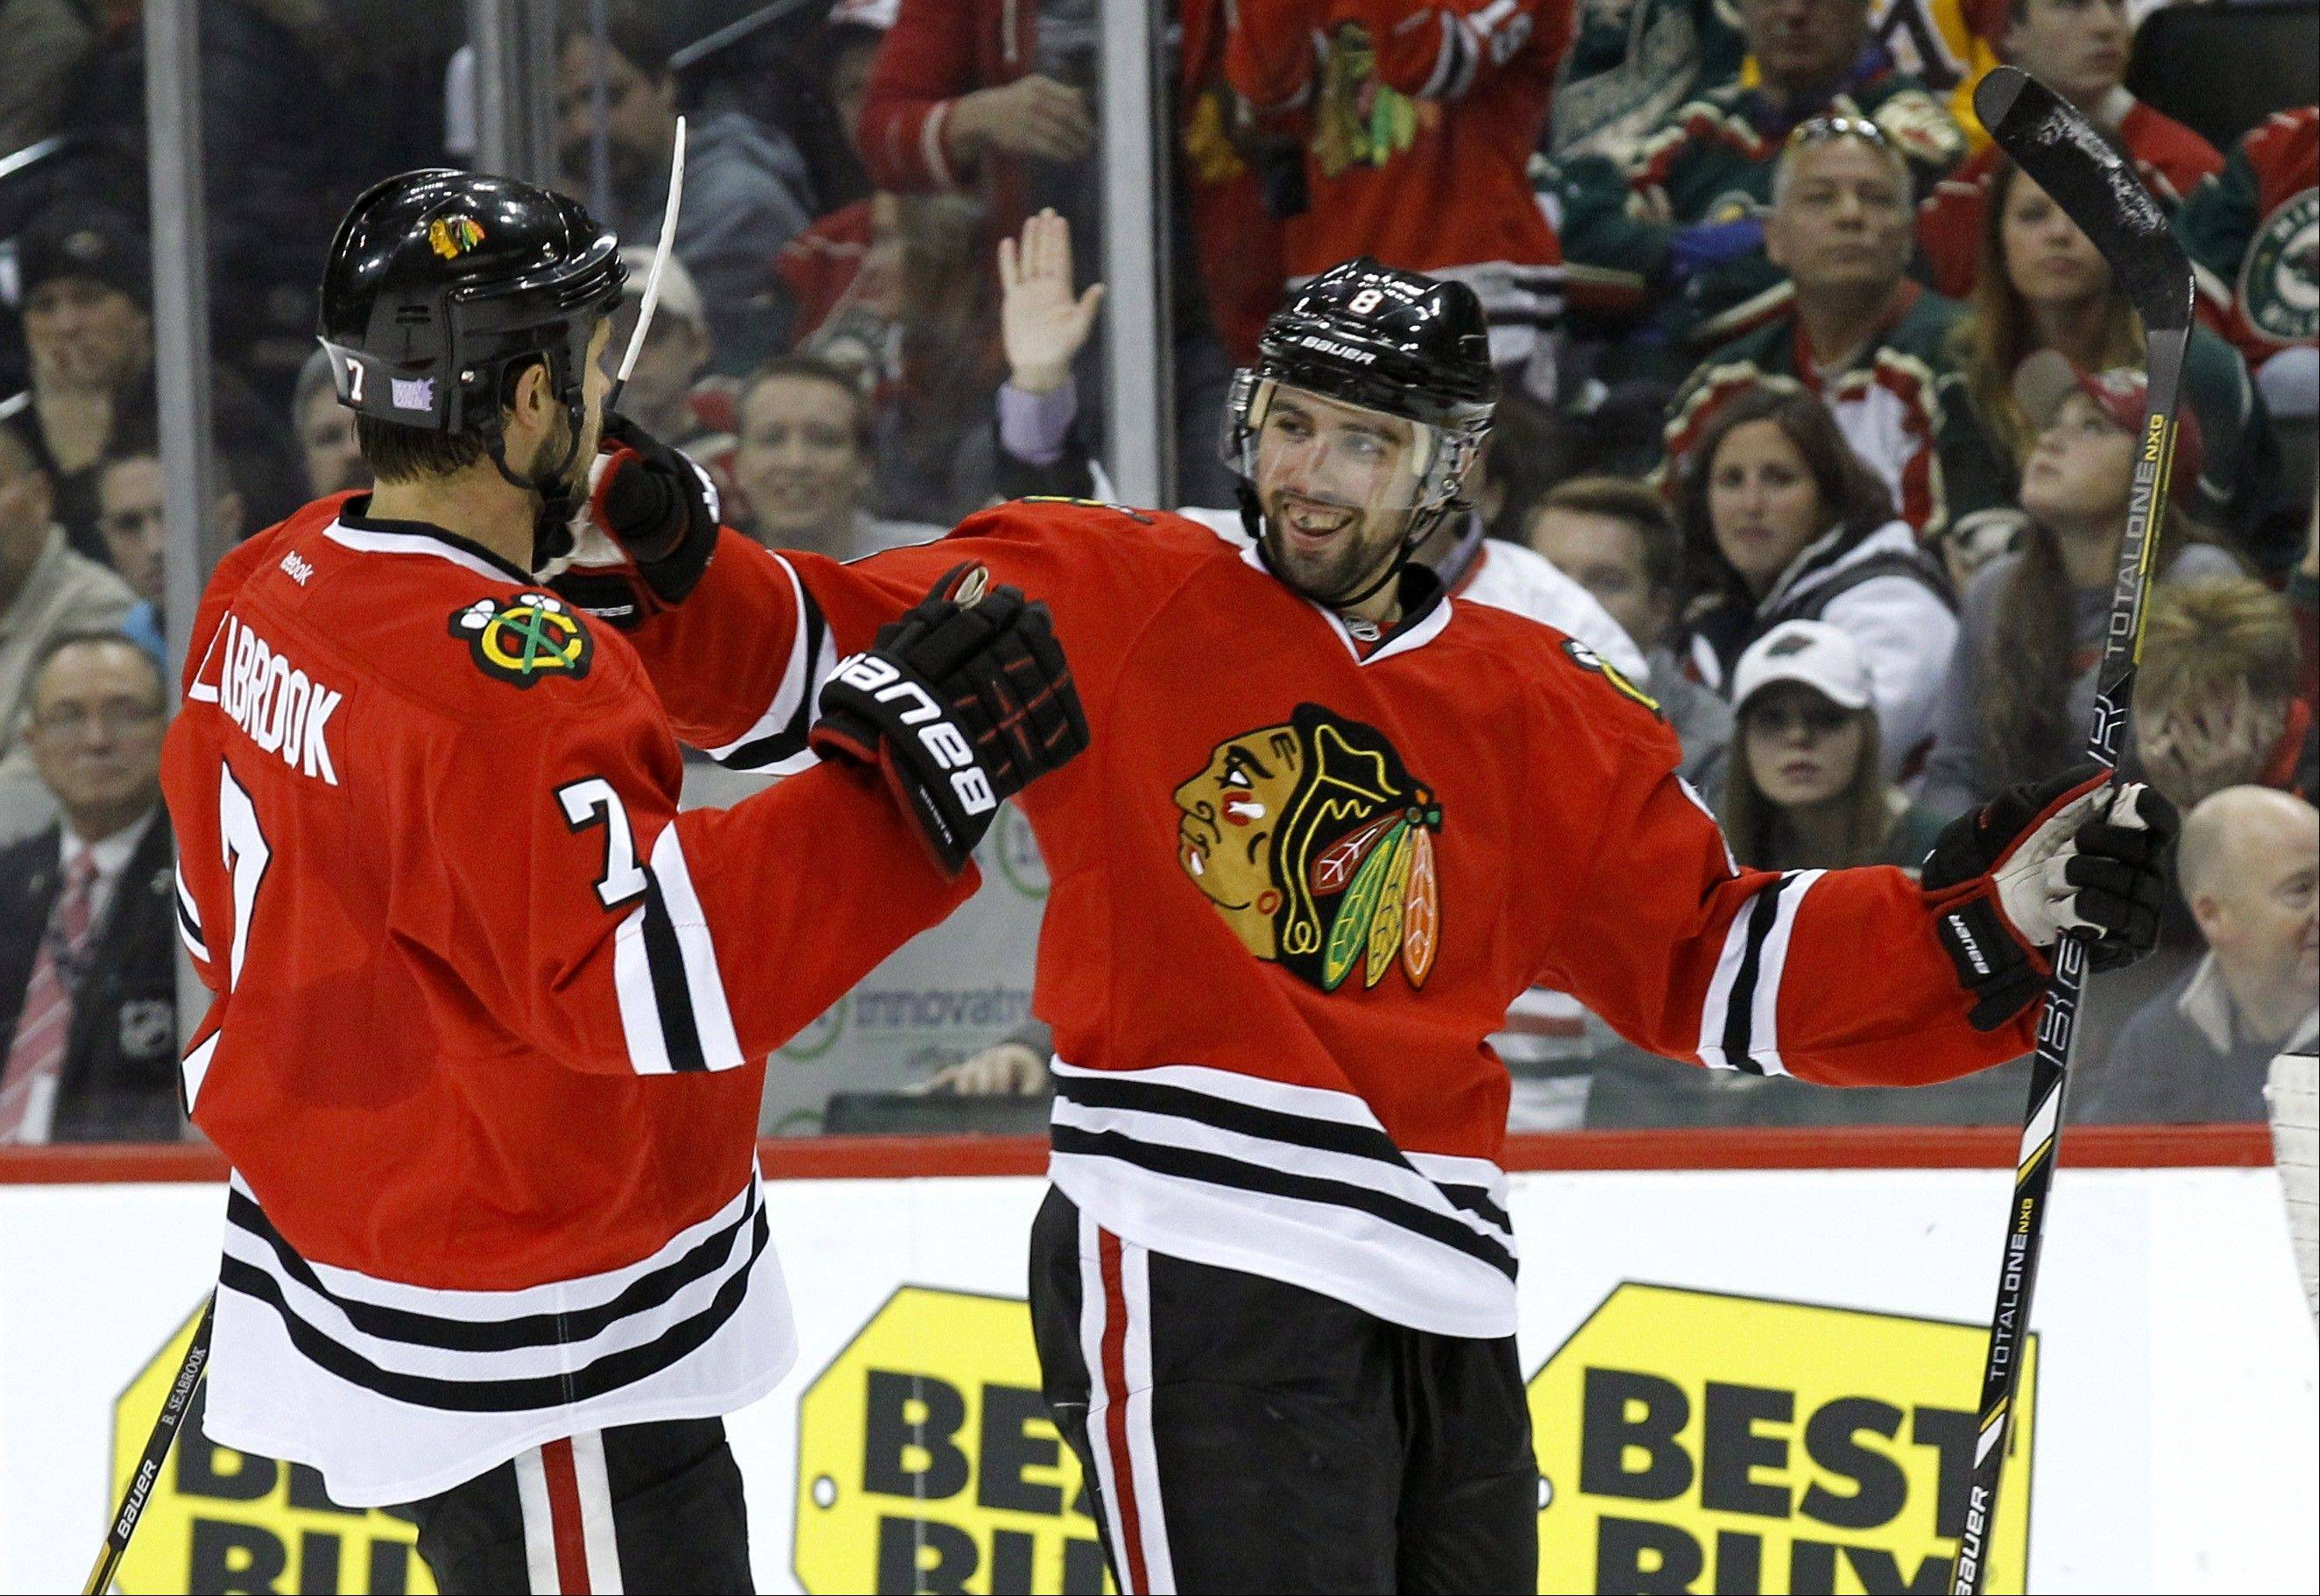 Chicago Blackhawks defenseman Nick Leddy, right, and Chicago Blackhawks defenseman Brent Seabrook, left, celebrate after Leddy�s goal on Minnesota Wild goalie Niklas Backstrom during the second period of an NHL hockey game Monday night in St. Paul , Minn. The Blackhawks beat the Wild 5-1.